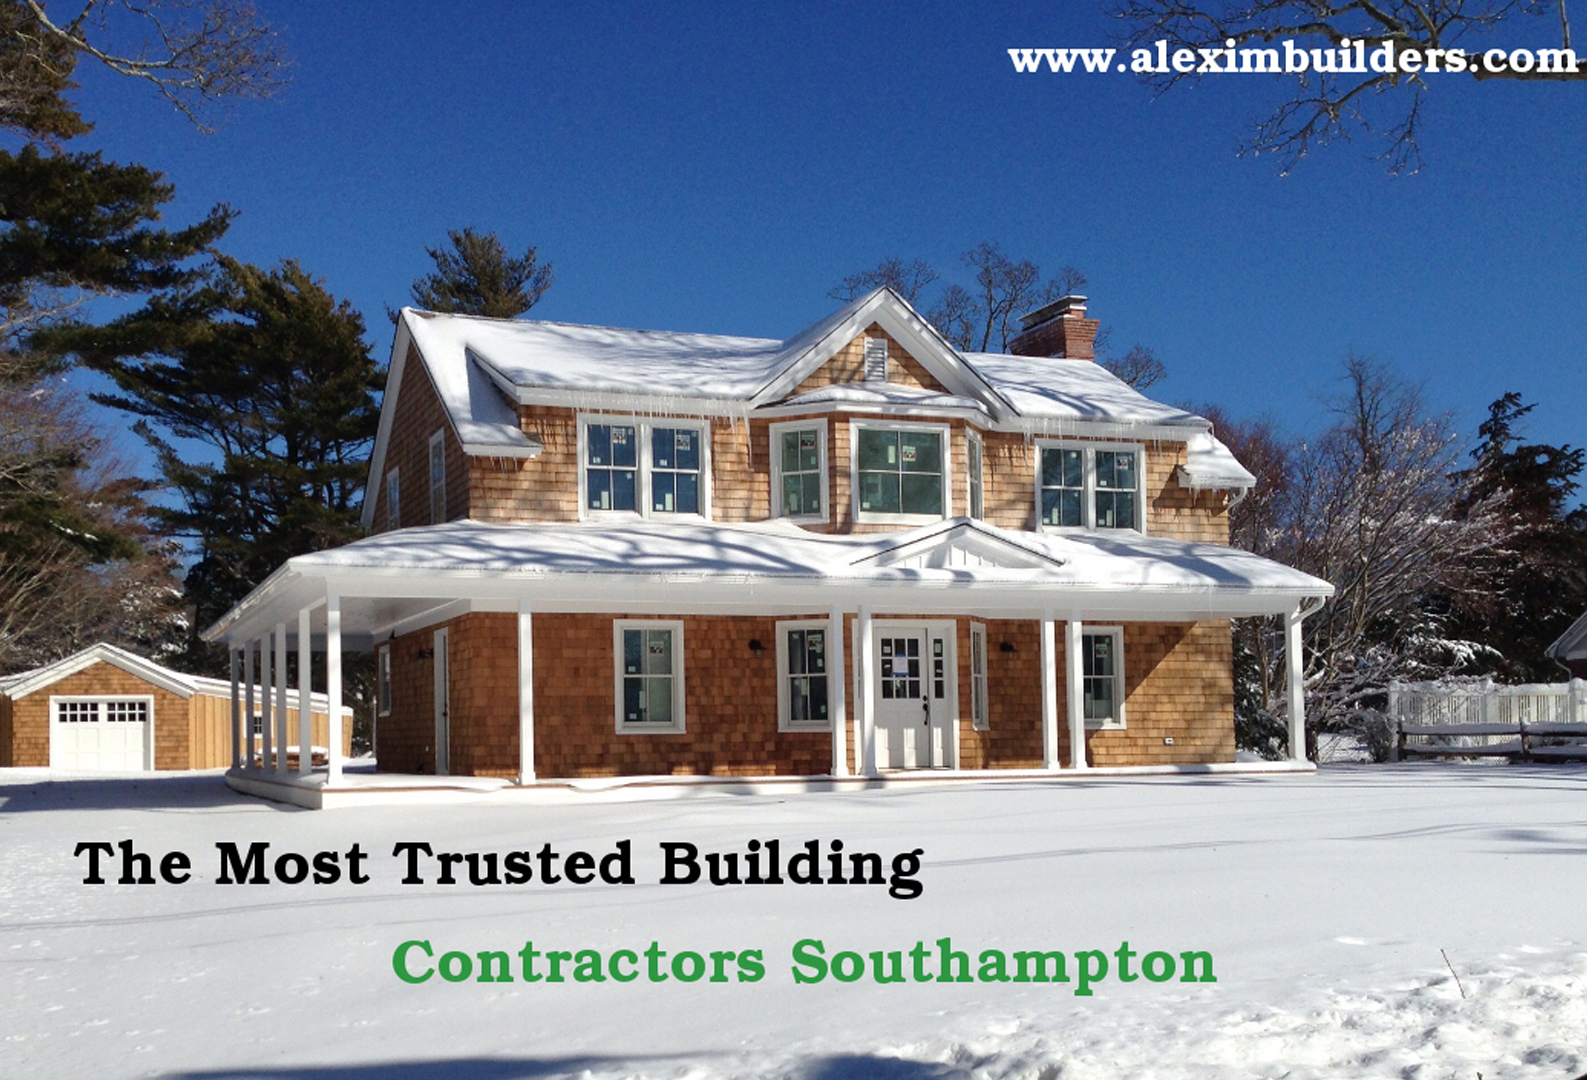 The-Most-Trusted-Building-Contractors-Southampton